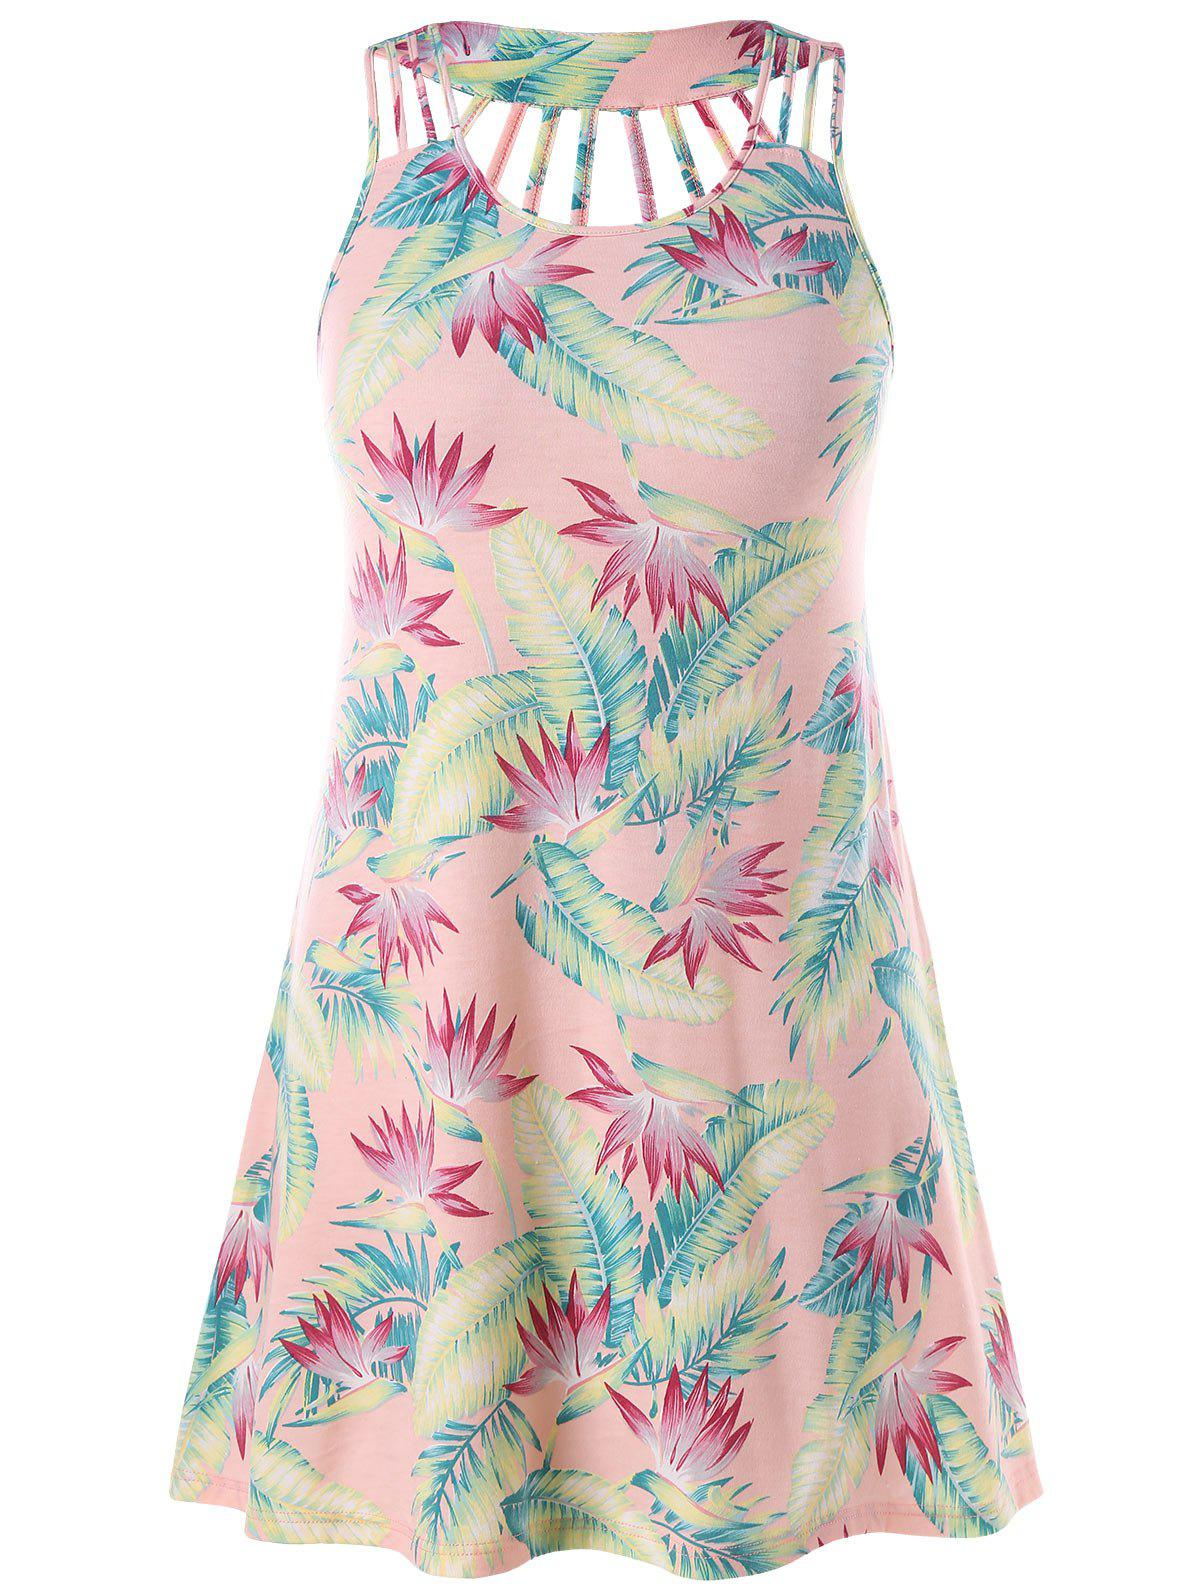 Cutout Plus Size Leaf Print Sundress - PINK BUBBLEGUM 2X